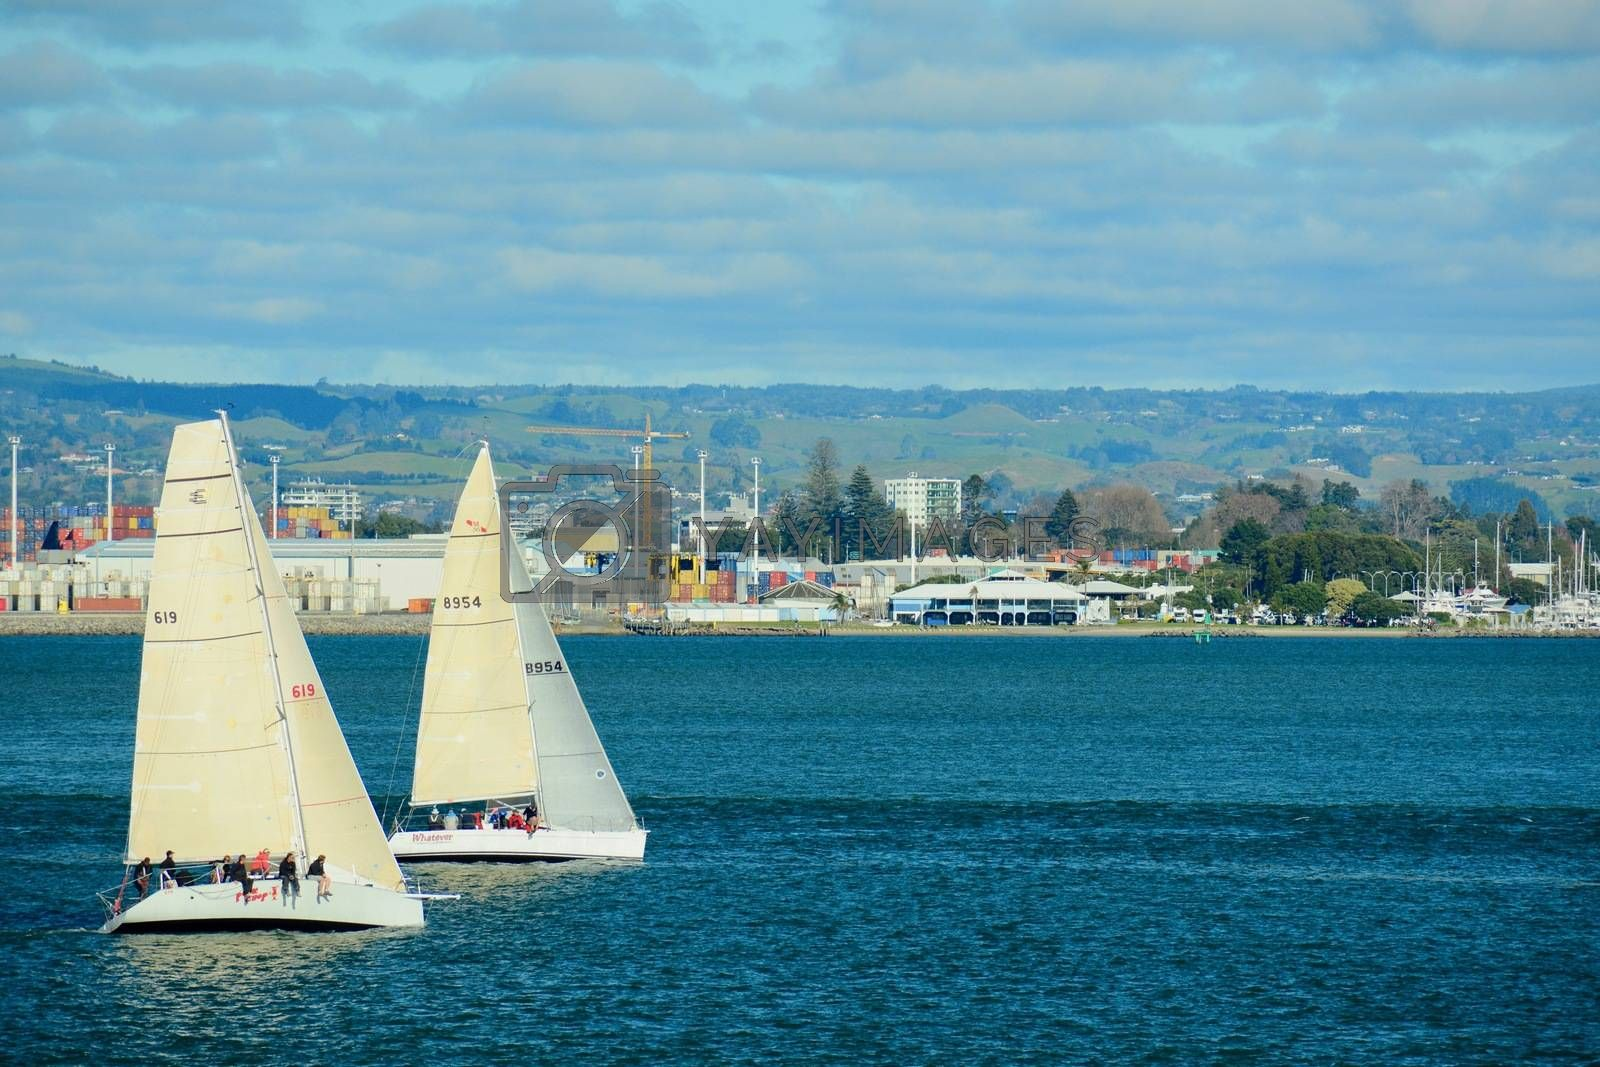 Papamoa Beach, Papamoa, New Zealand – July 07, 2019: Mount Maunganui Yacht Club with its enjoyable racing for all boats and crew. by Marshalkina